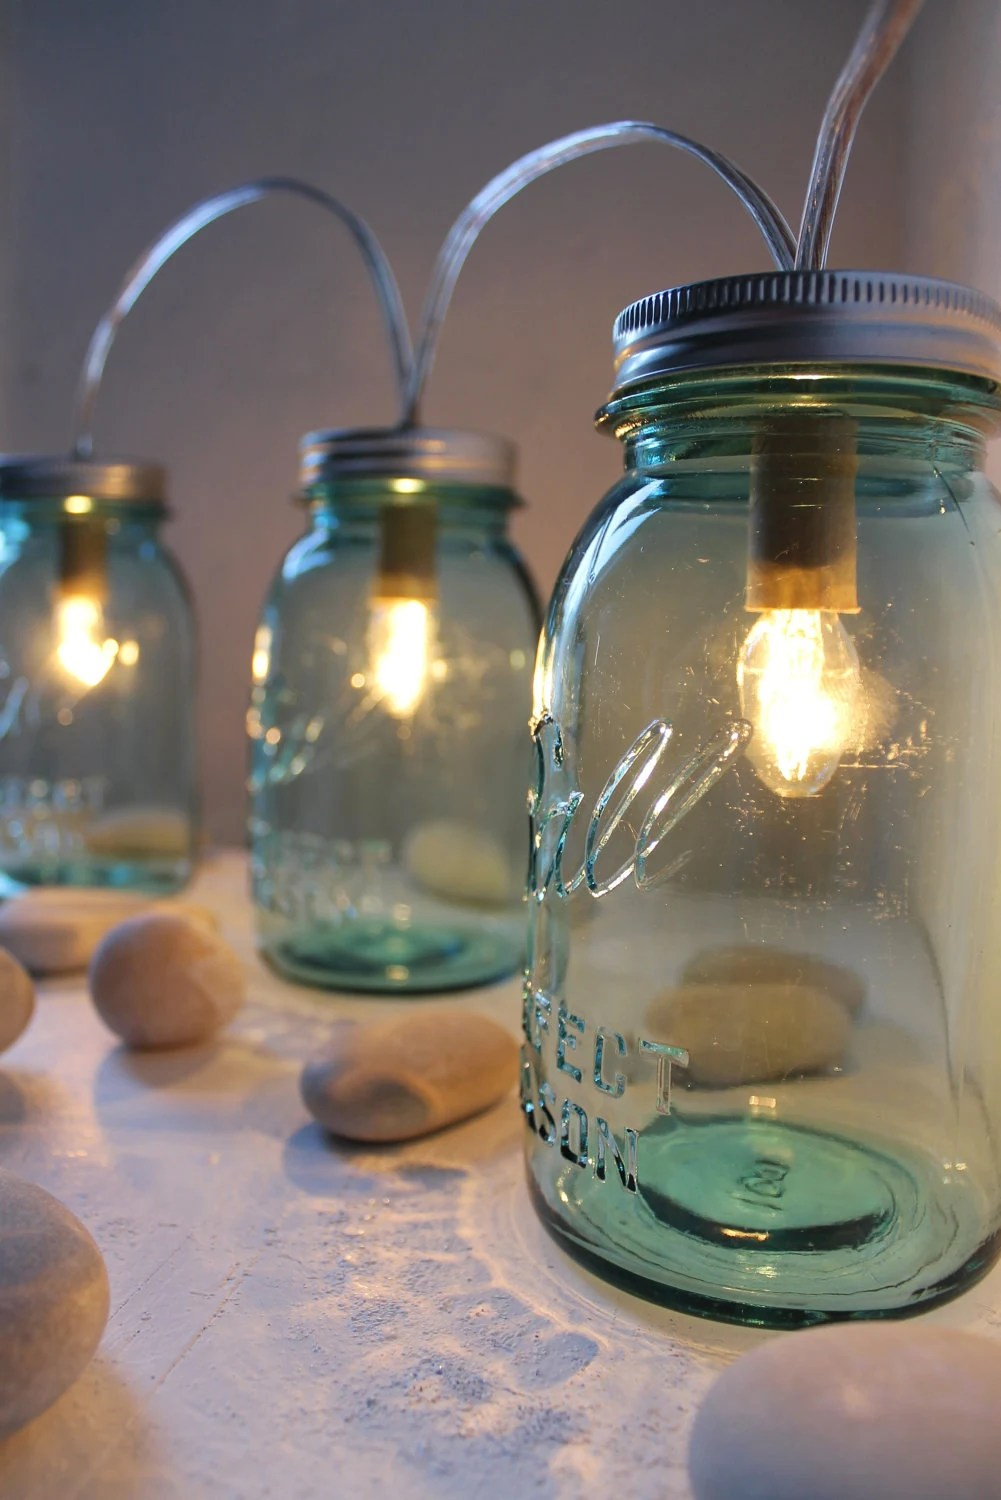 Sapphire Mason Jar Lights - Glass Banner Style - Modern Industrial Rustic Farmhouse - Handrcrafted Upcycled BootsNGus Lighting Fixture